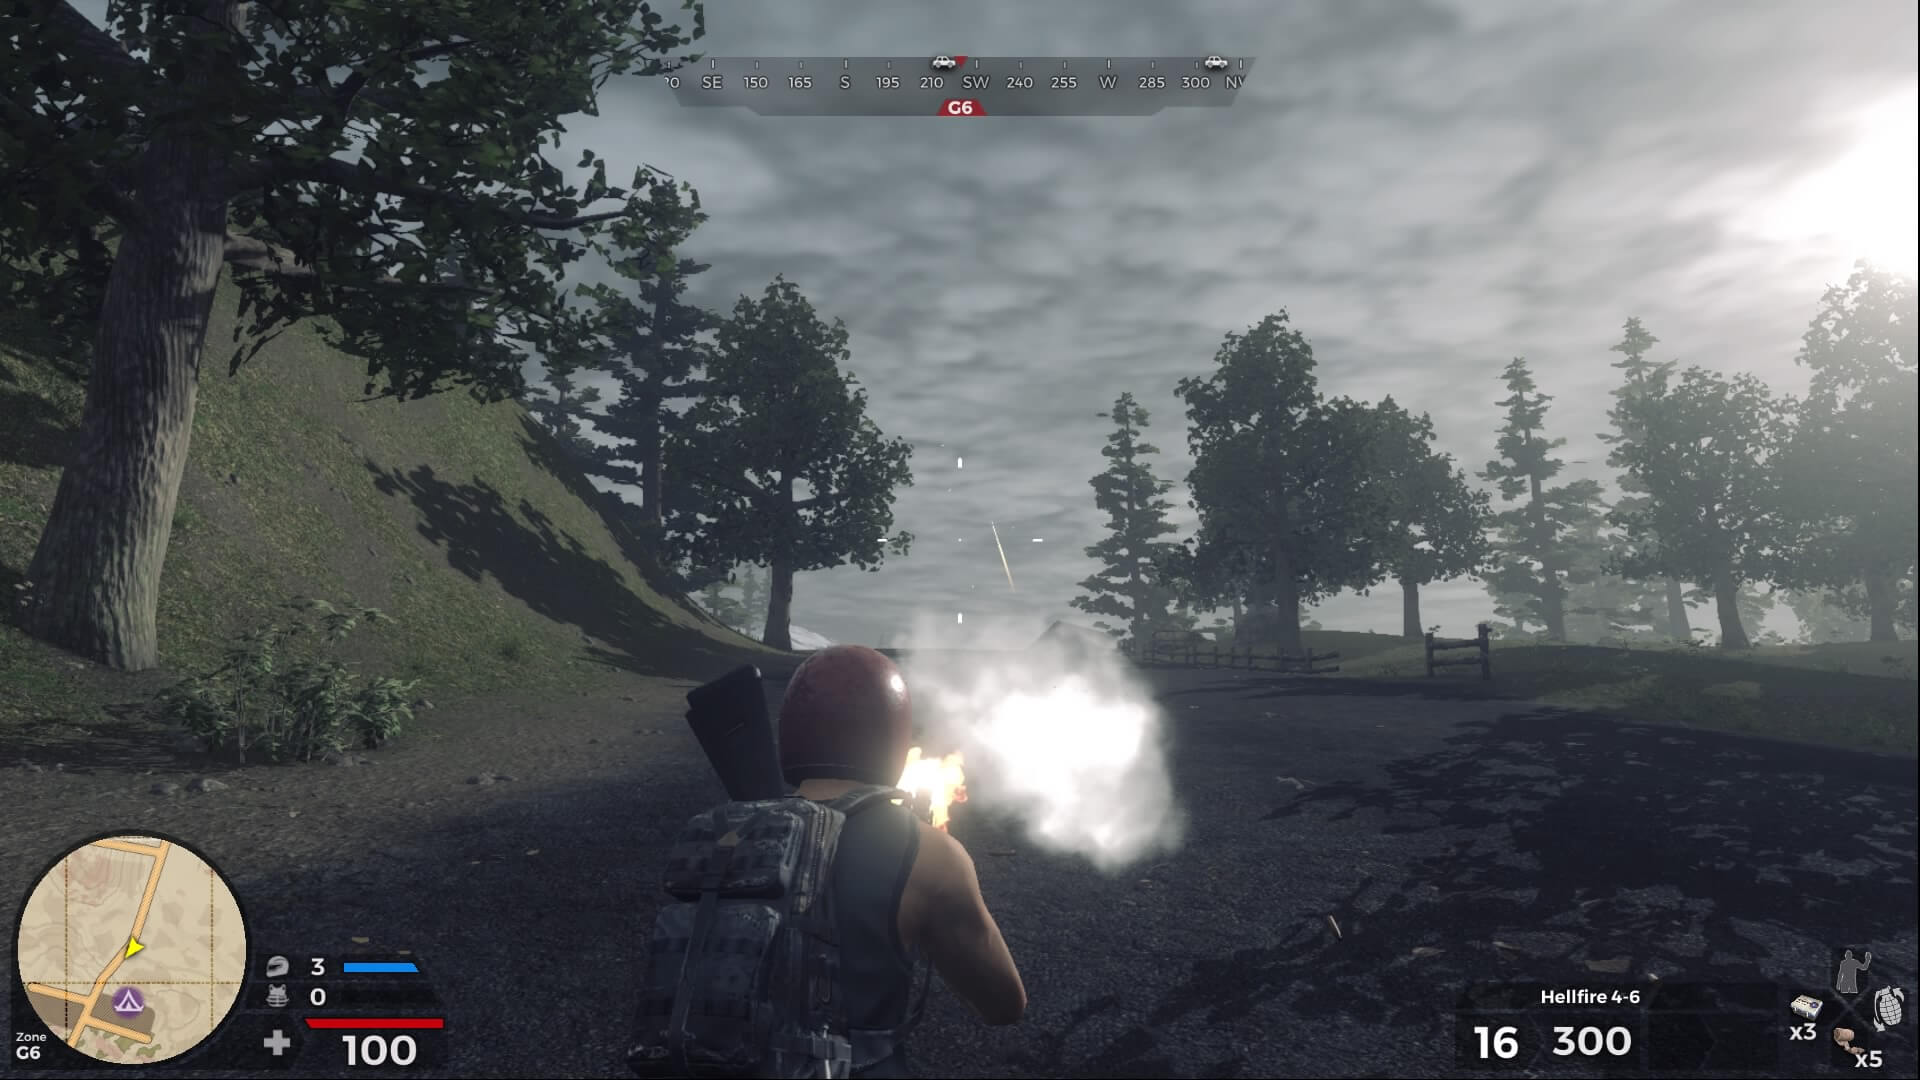 H1Z1 has landed and is available for download